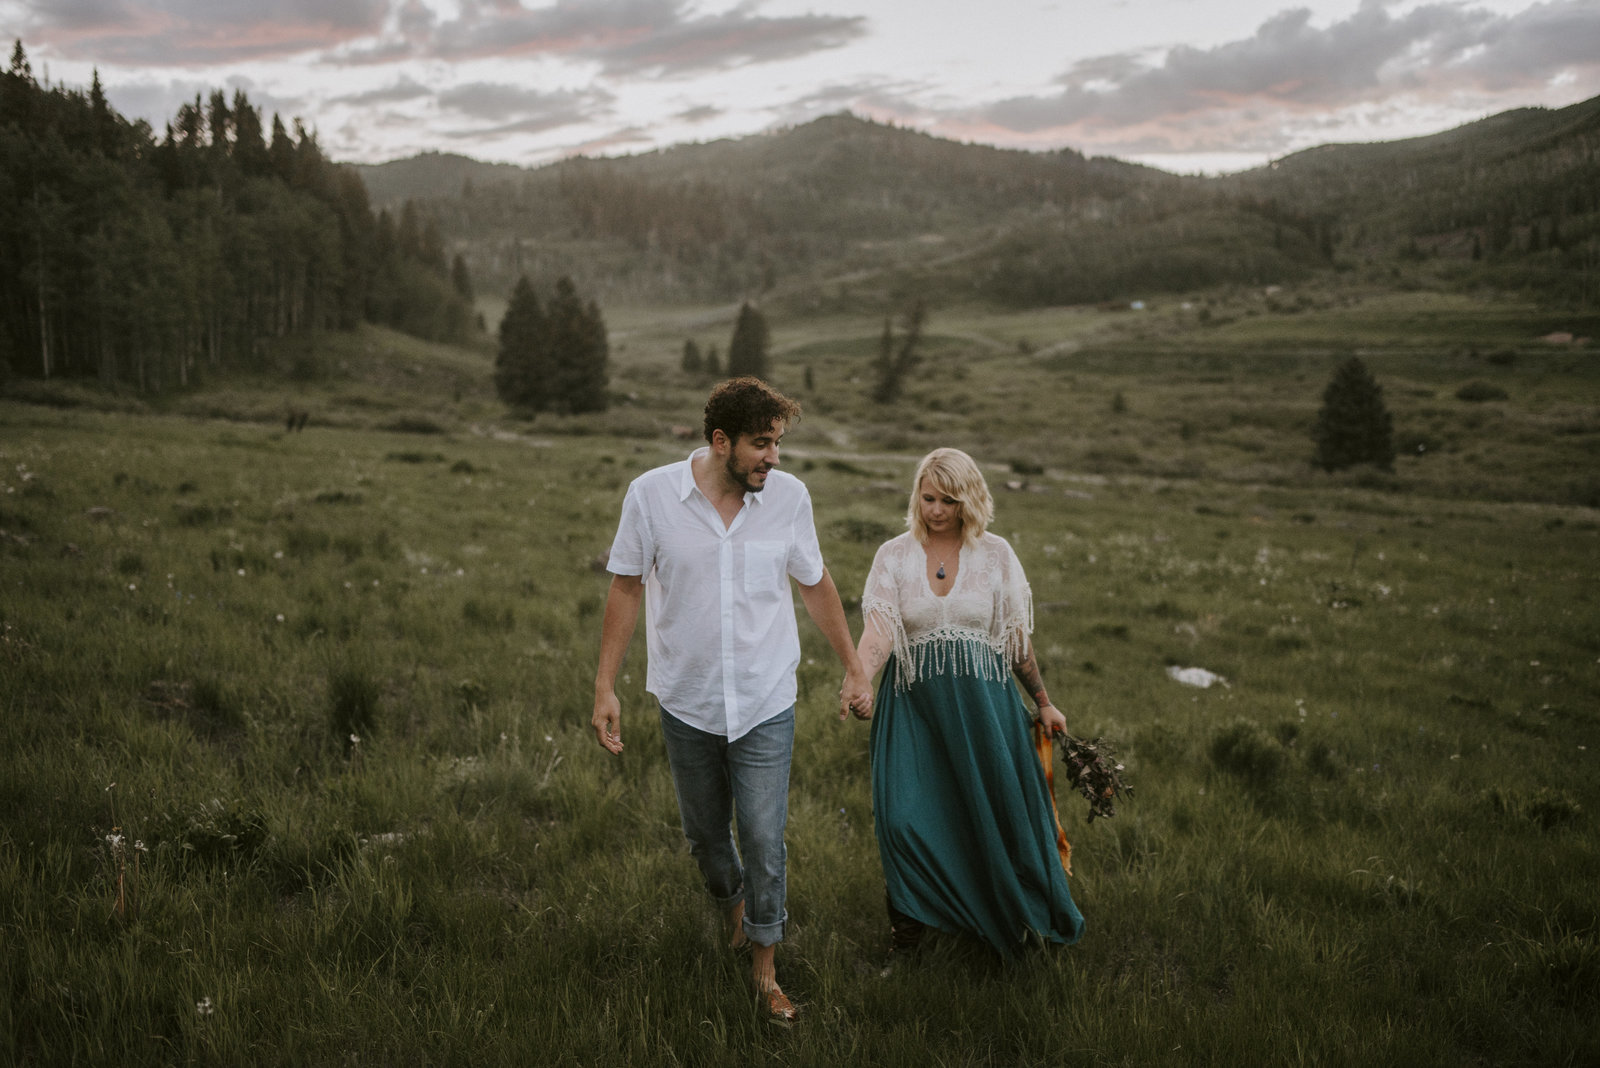 telluride_wedding_elopement_photographer_ouray_winter_elopement_small_wedding_intimate246